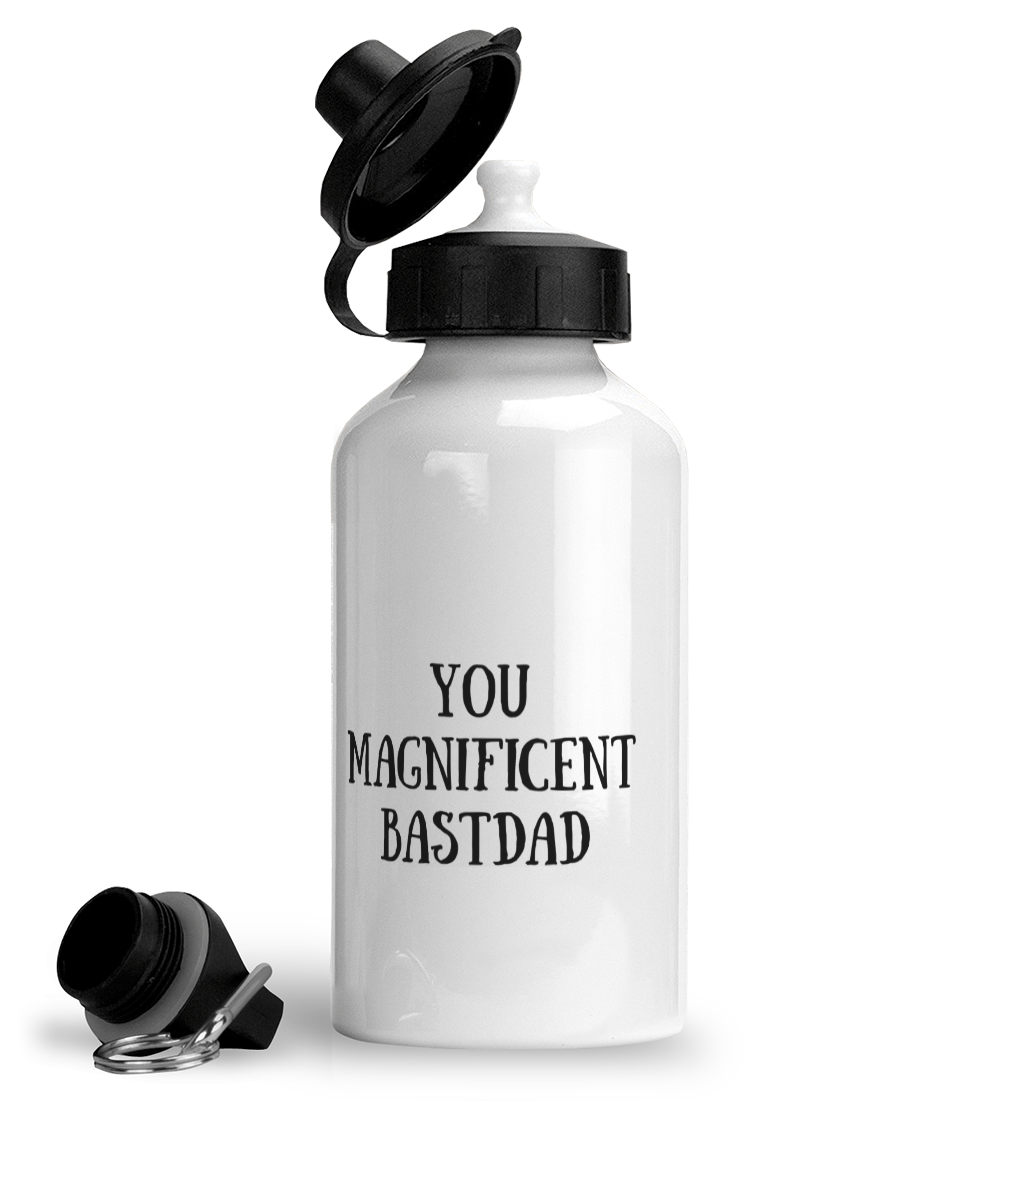 You Magnificent BastDad Water Bottle - Left Side Image